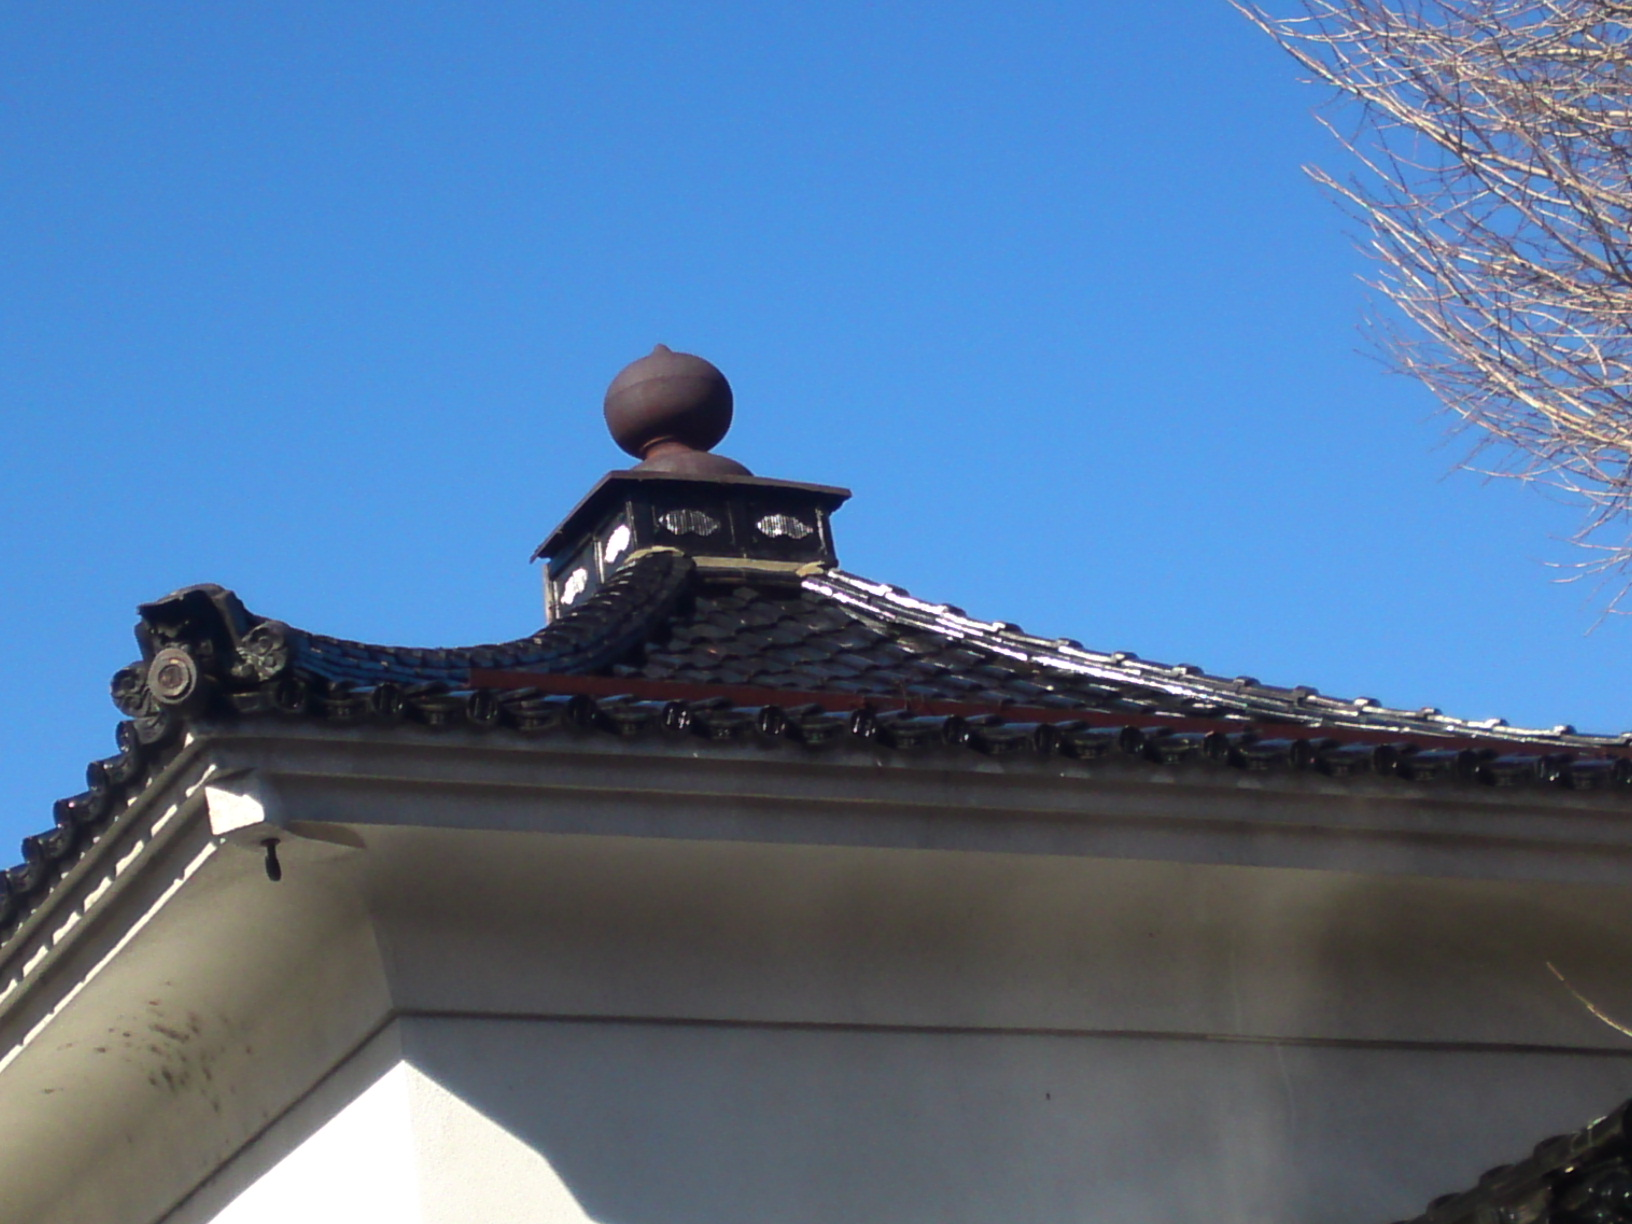 Japanese kura shizuoka gourmet for Roof peak decorations